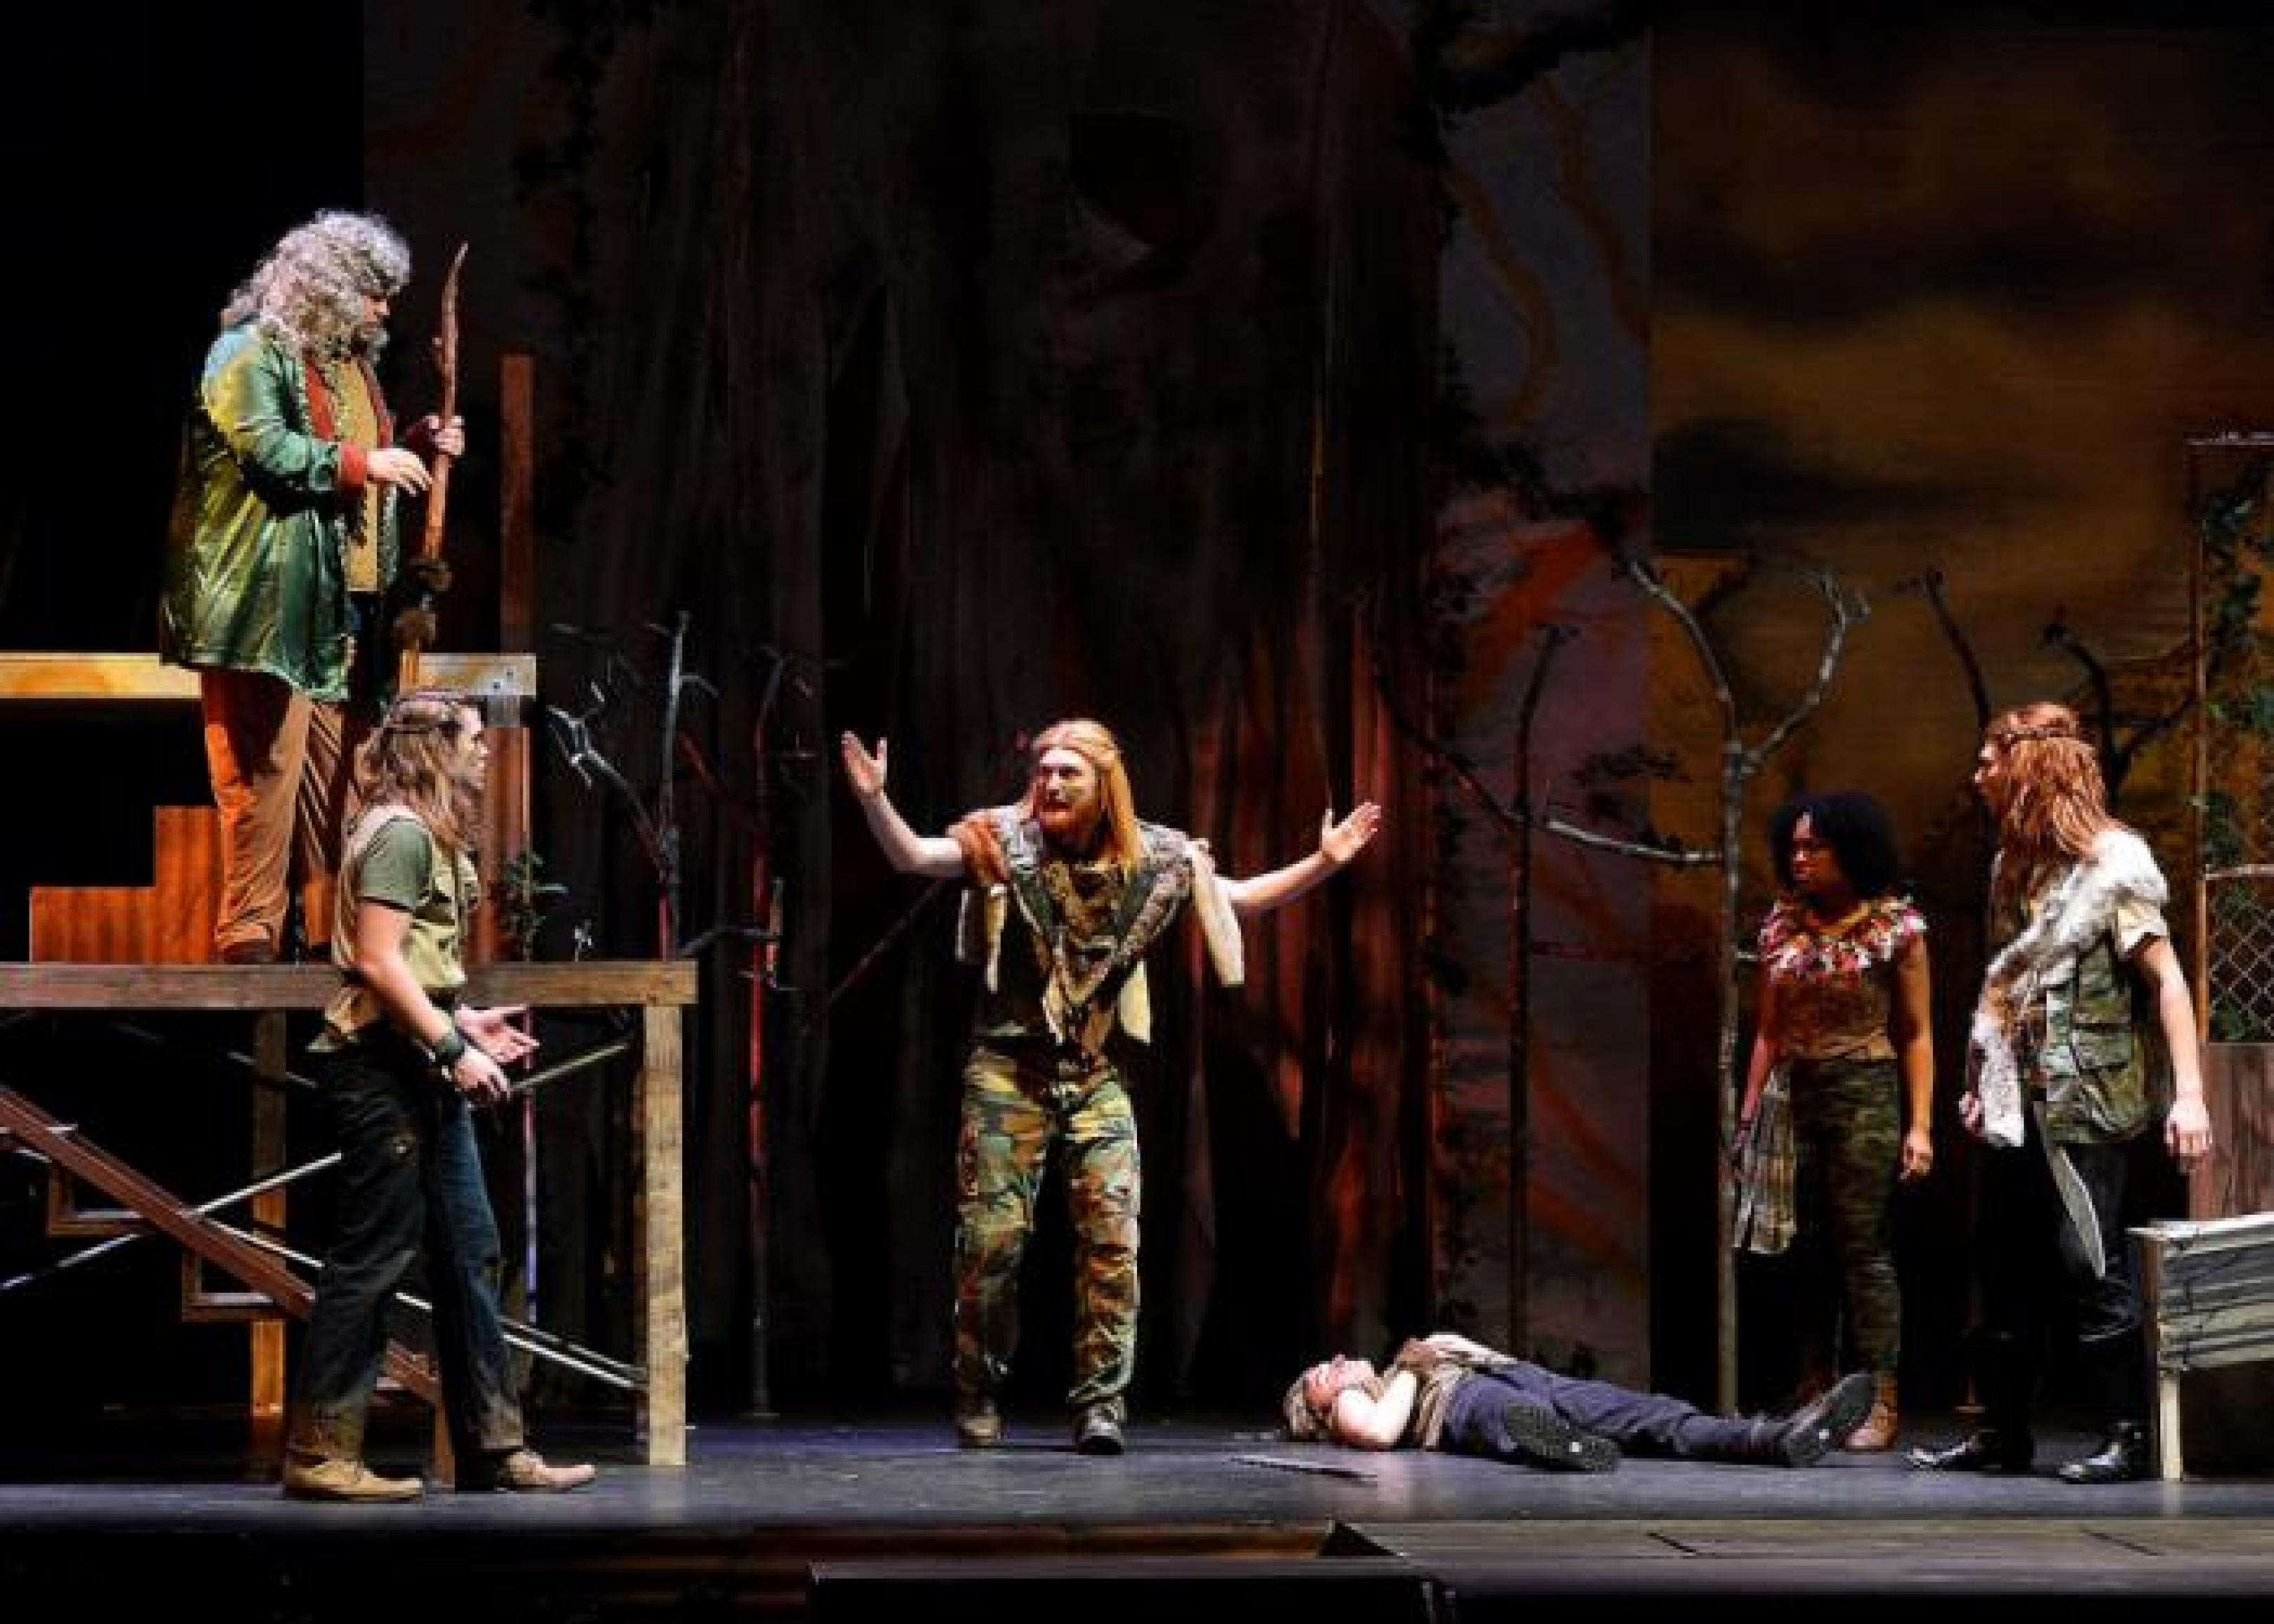 publicity image for Titus Andronicus